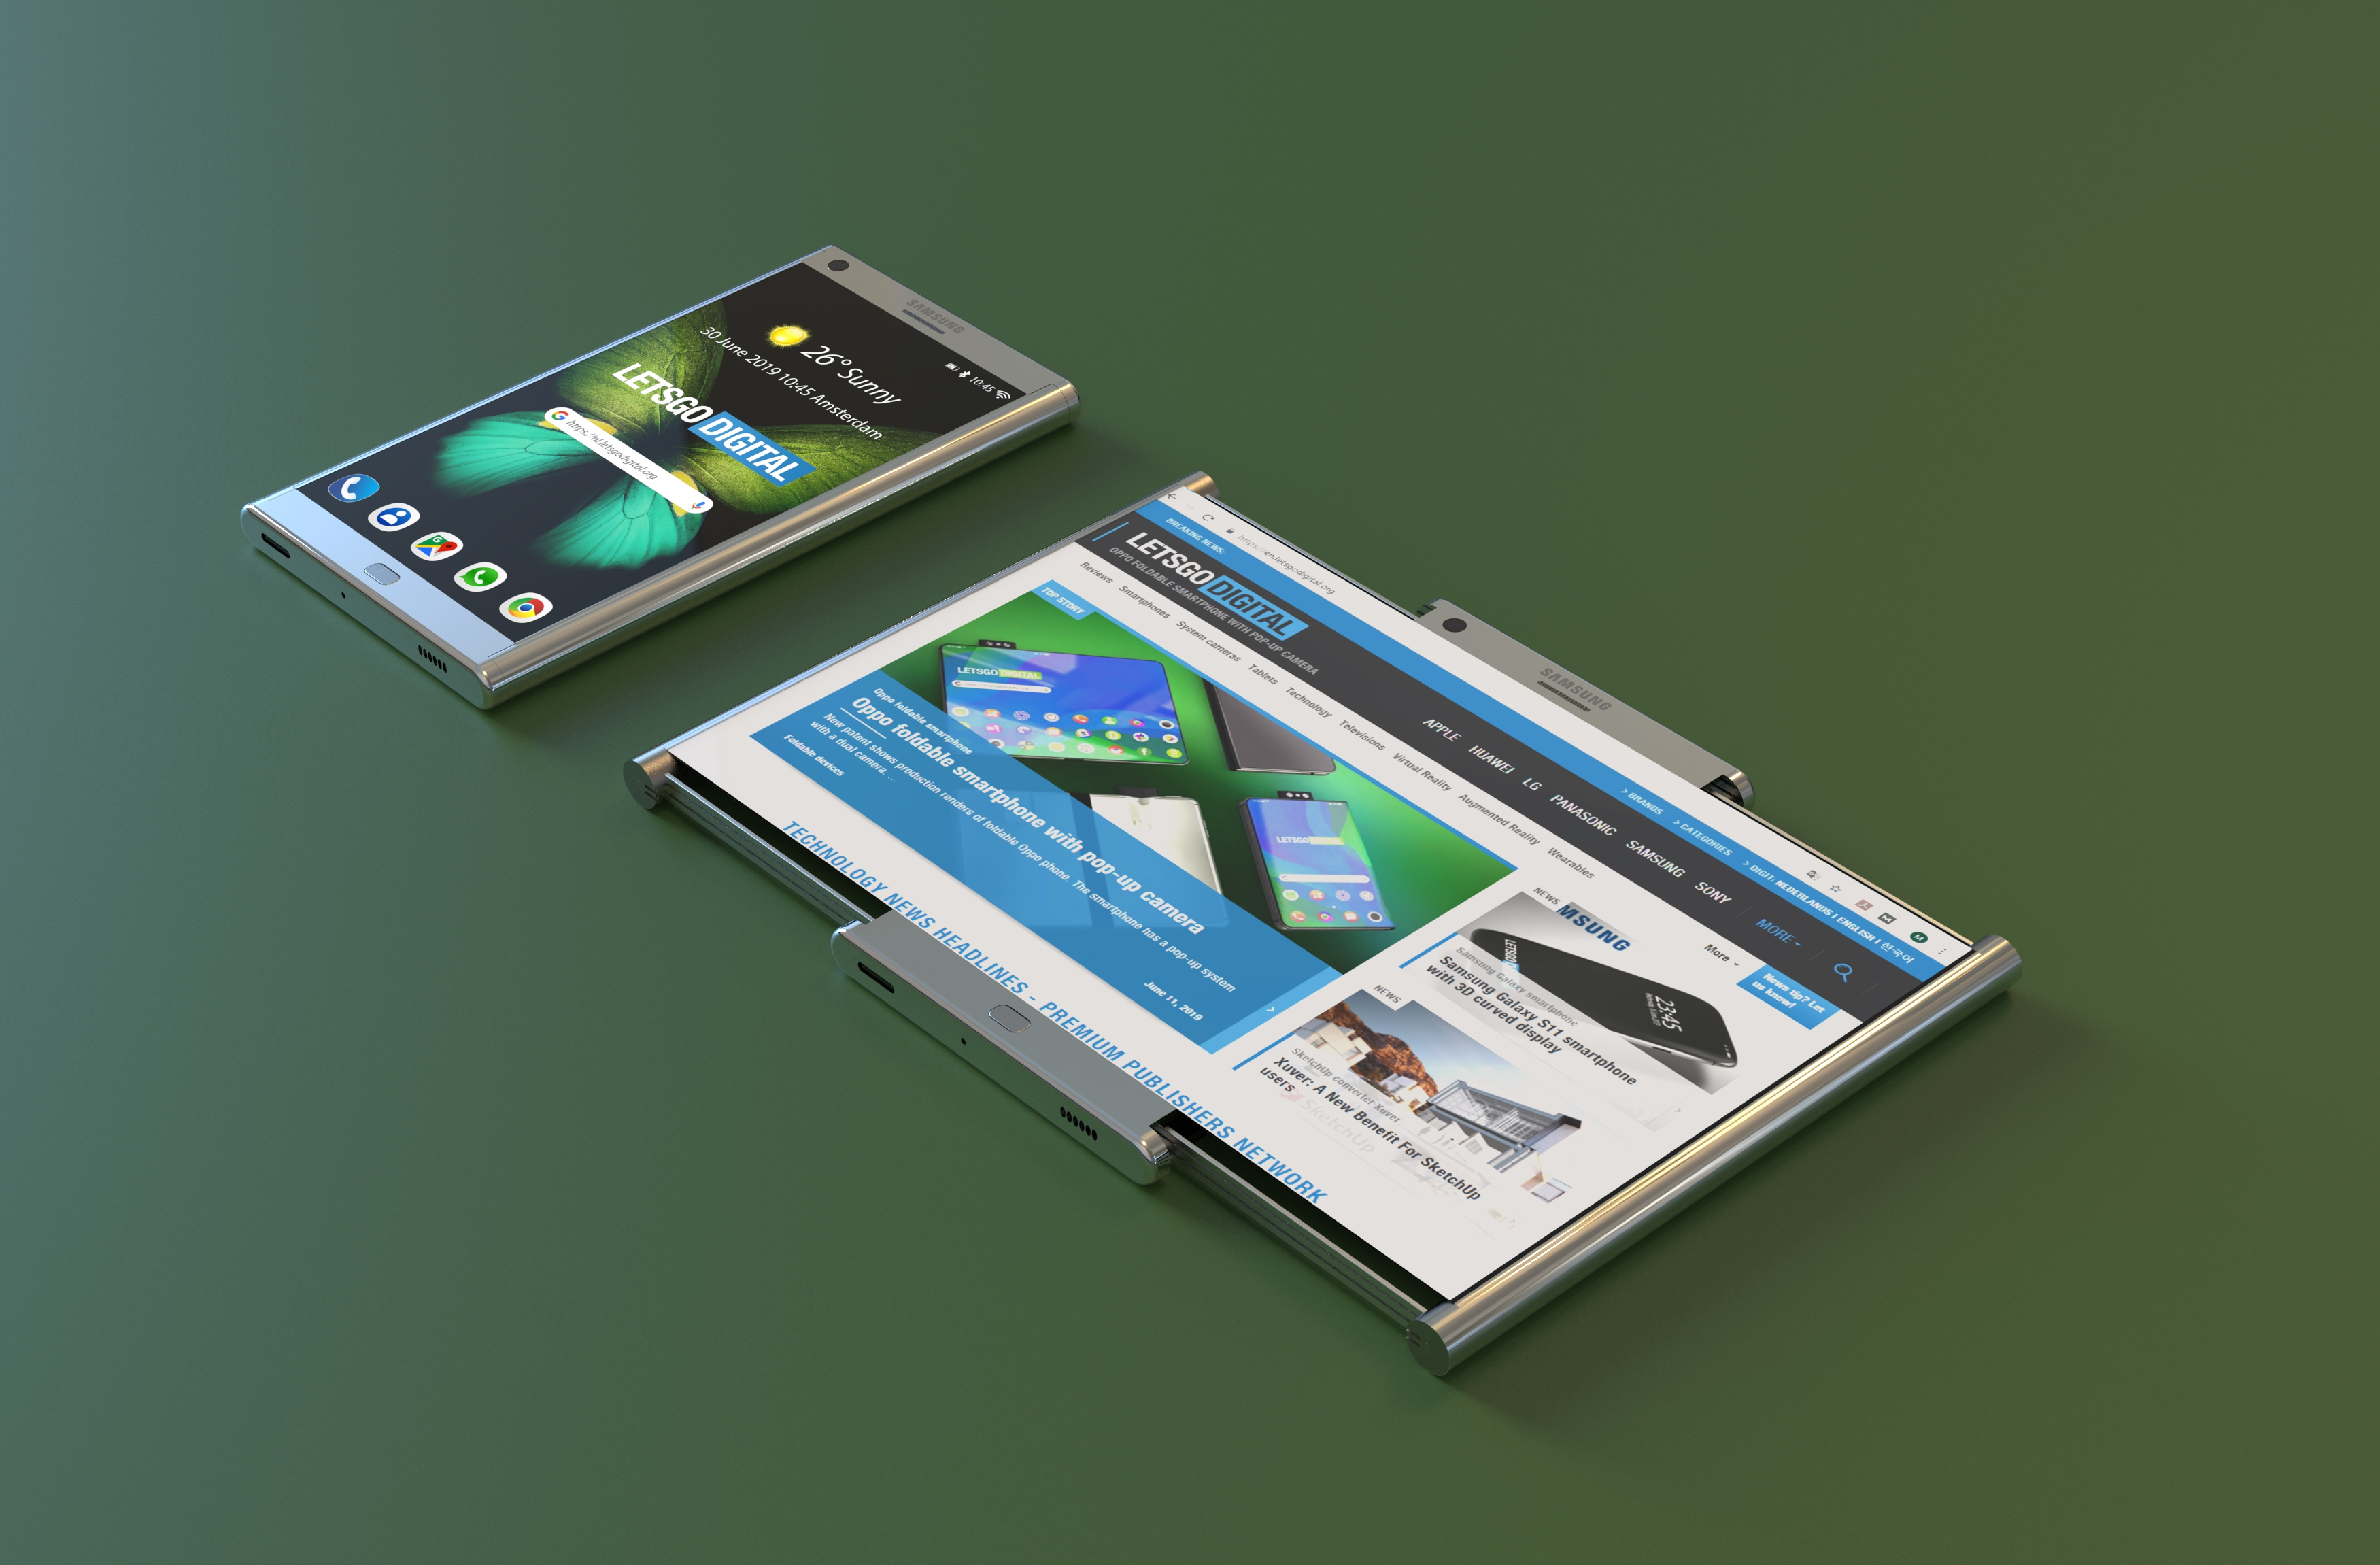 Samsung Galaxy smartphone with pull out display   LetsGoDigital